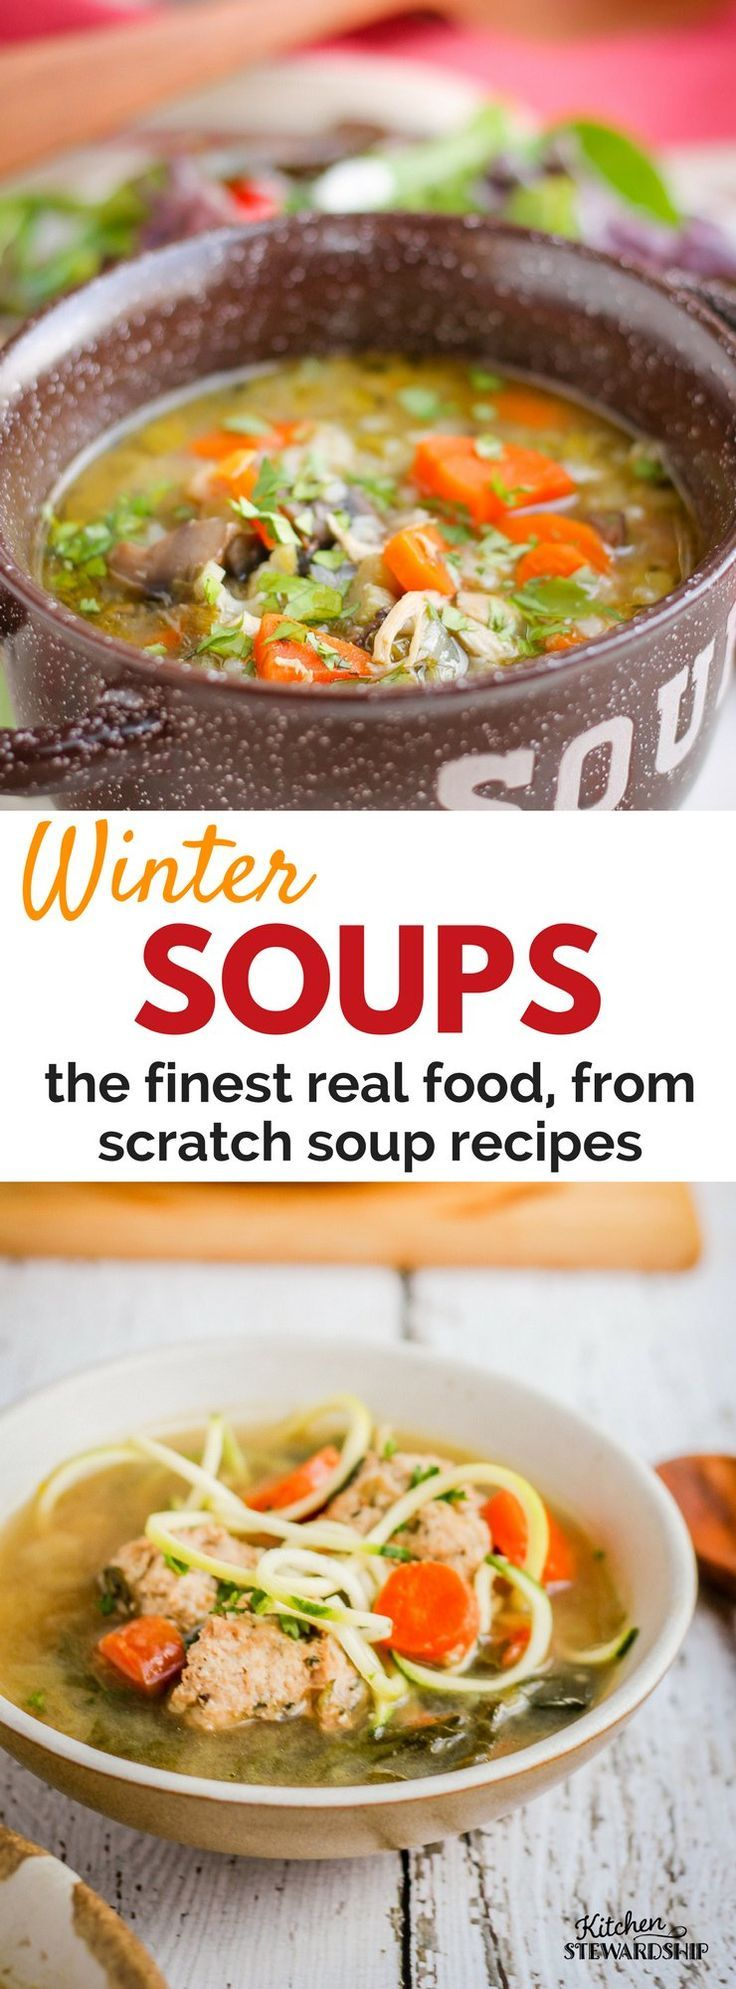 Over 50 homemade soup recipes. Healthy, and included gluten free, dairy free, paleo and GAPs friendly recipes. Use these recipes all winter long!